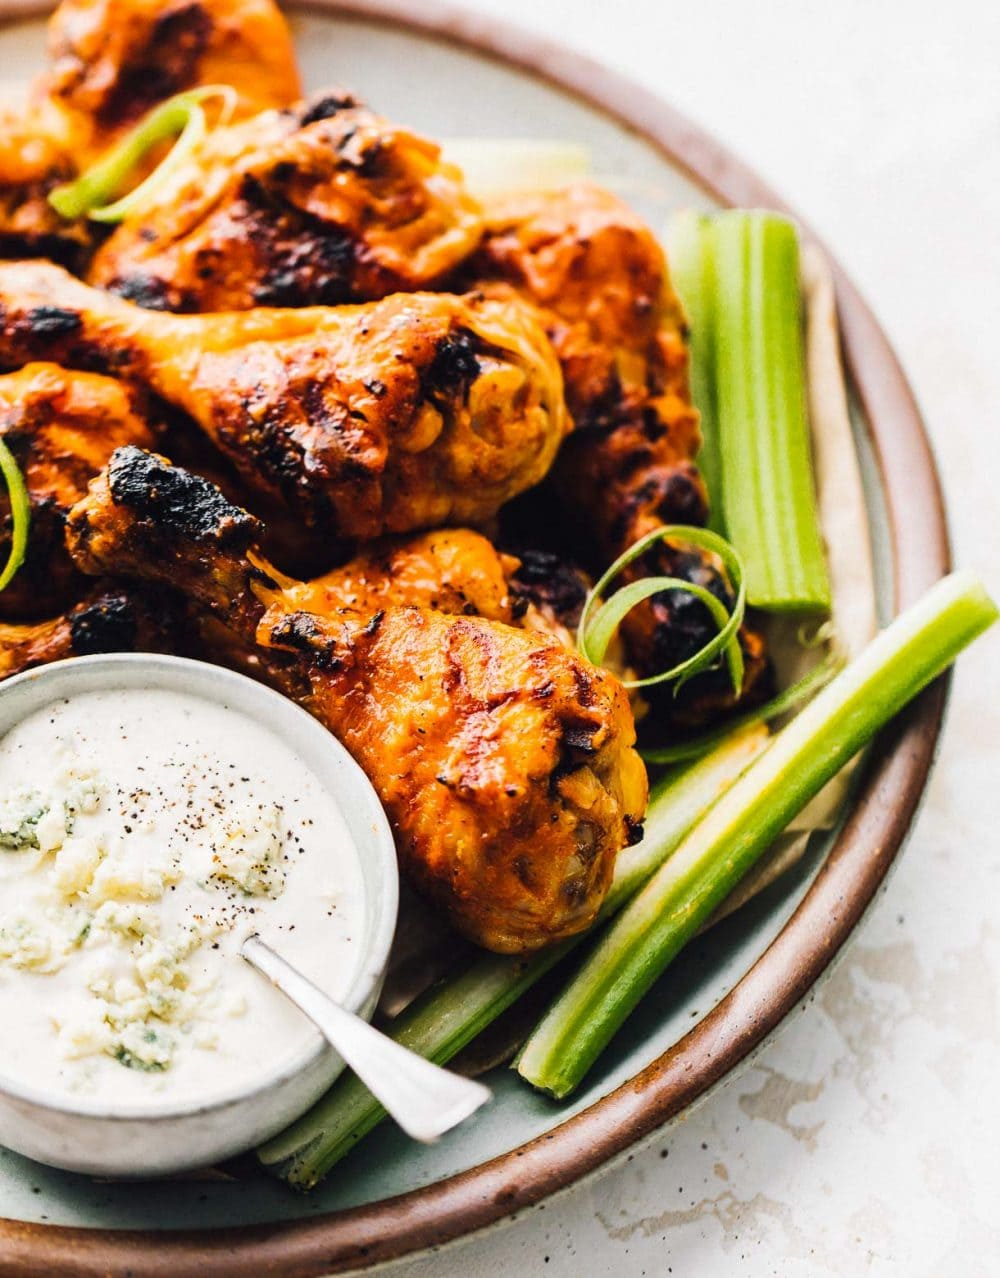 buffalo chicken drumsticks on a plate with celery and a small bowl of blue cheese